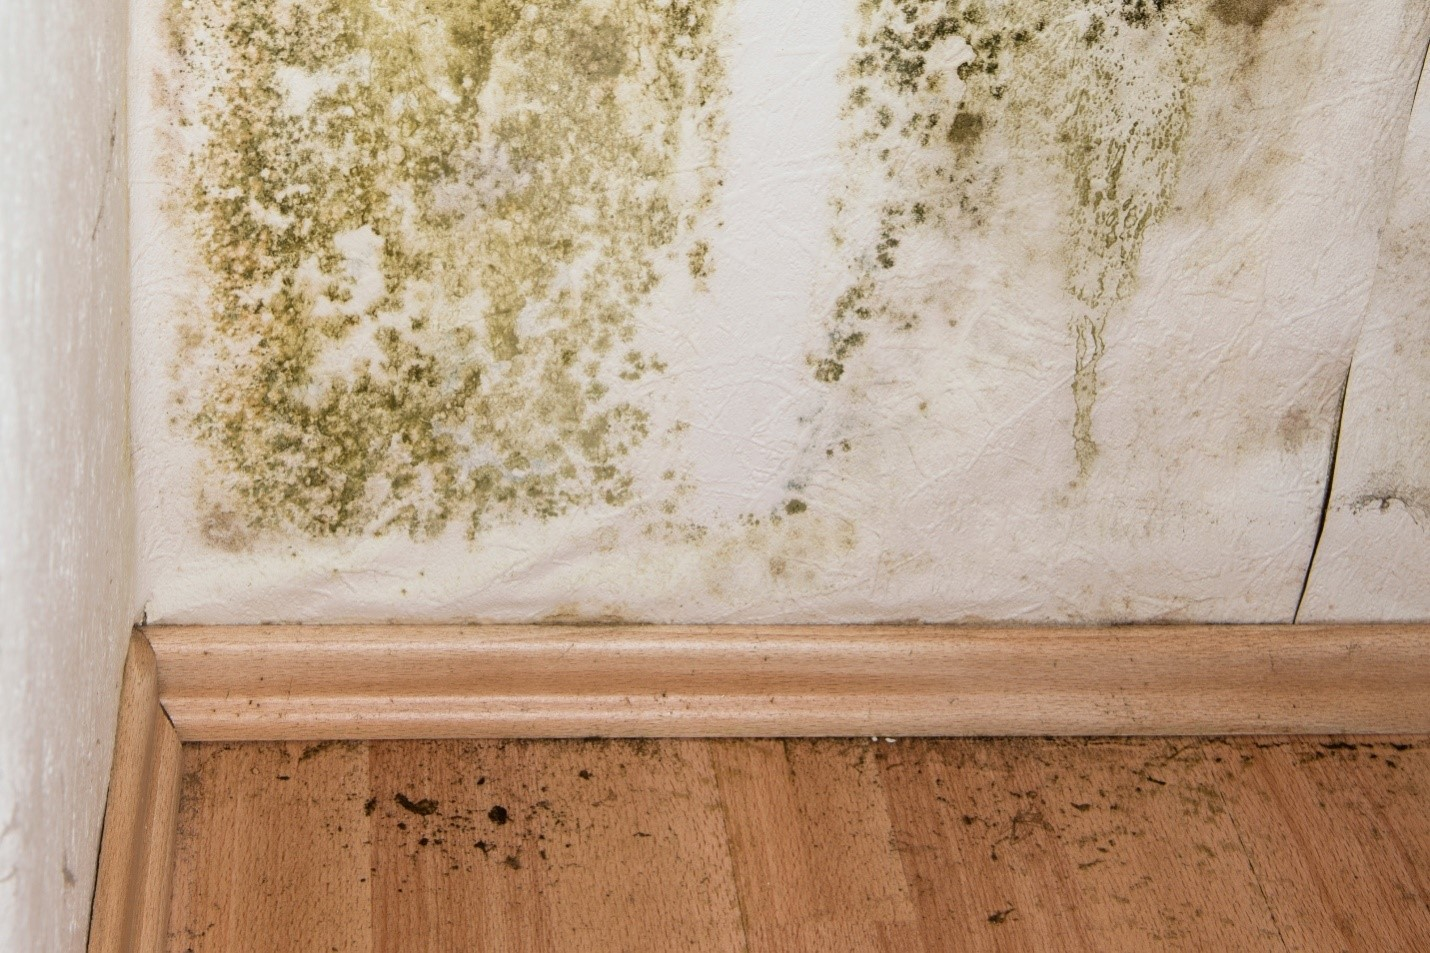 How to Deal with Mold Growth in Your Apartment